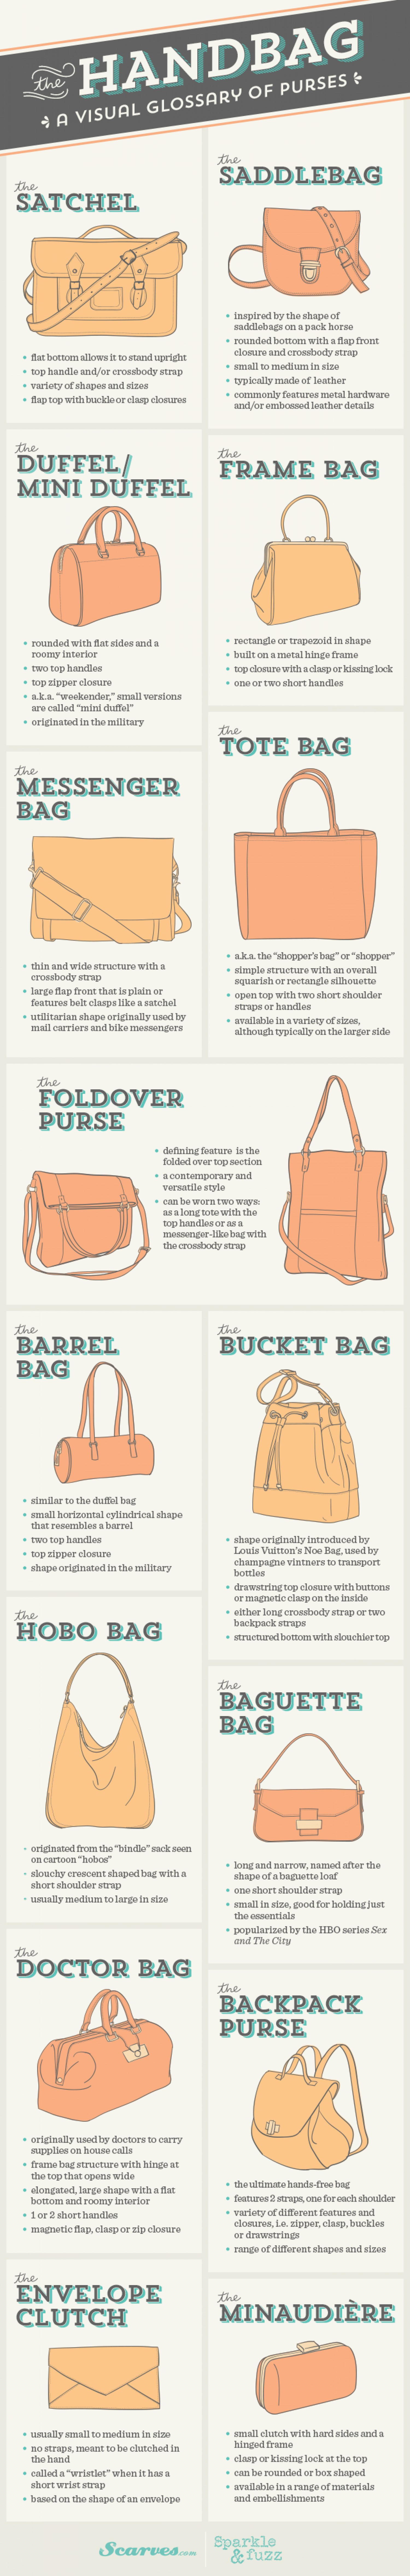 The Ultimate Guide to the Hand Bag